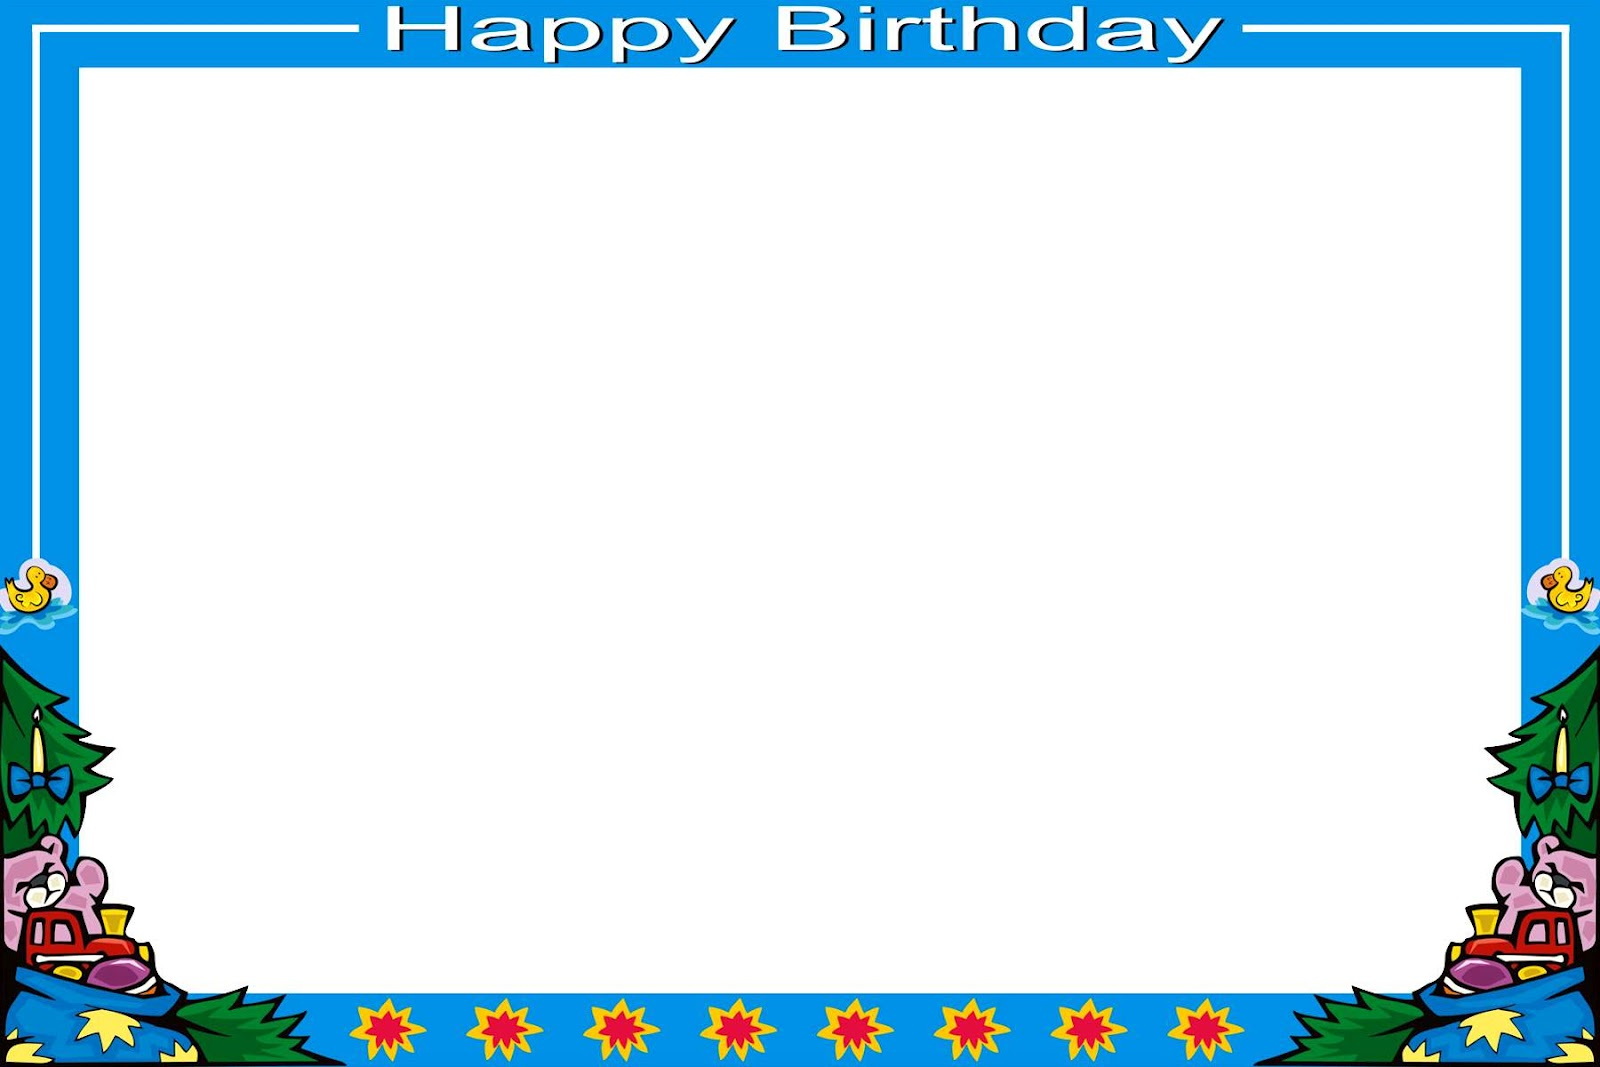 Frame Psd Flower Frames Birthday Design